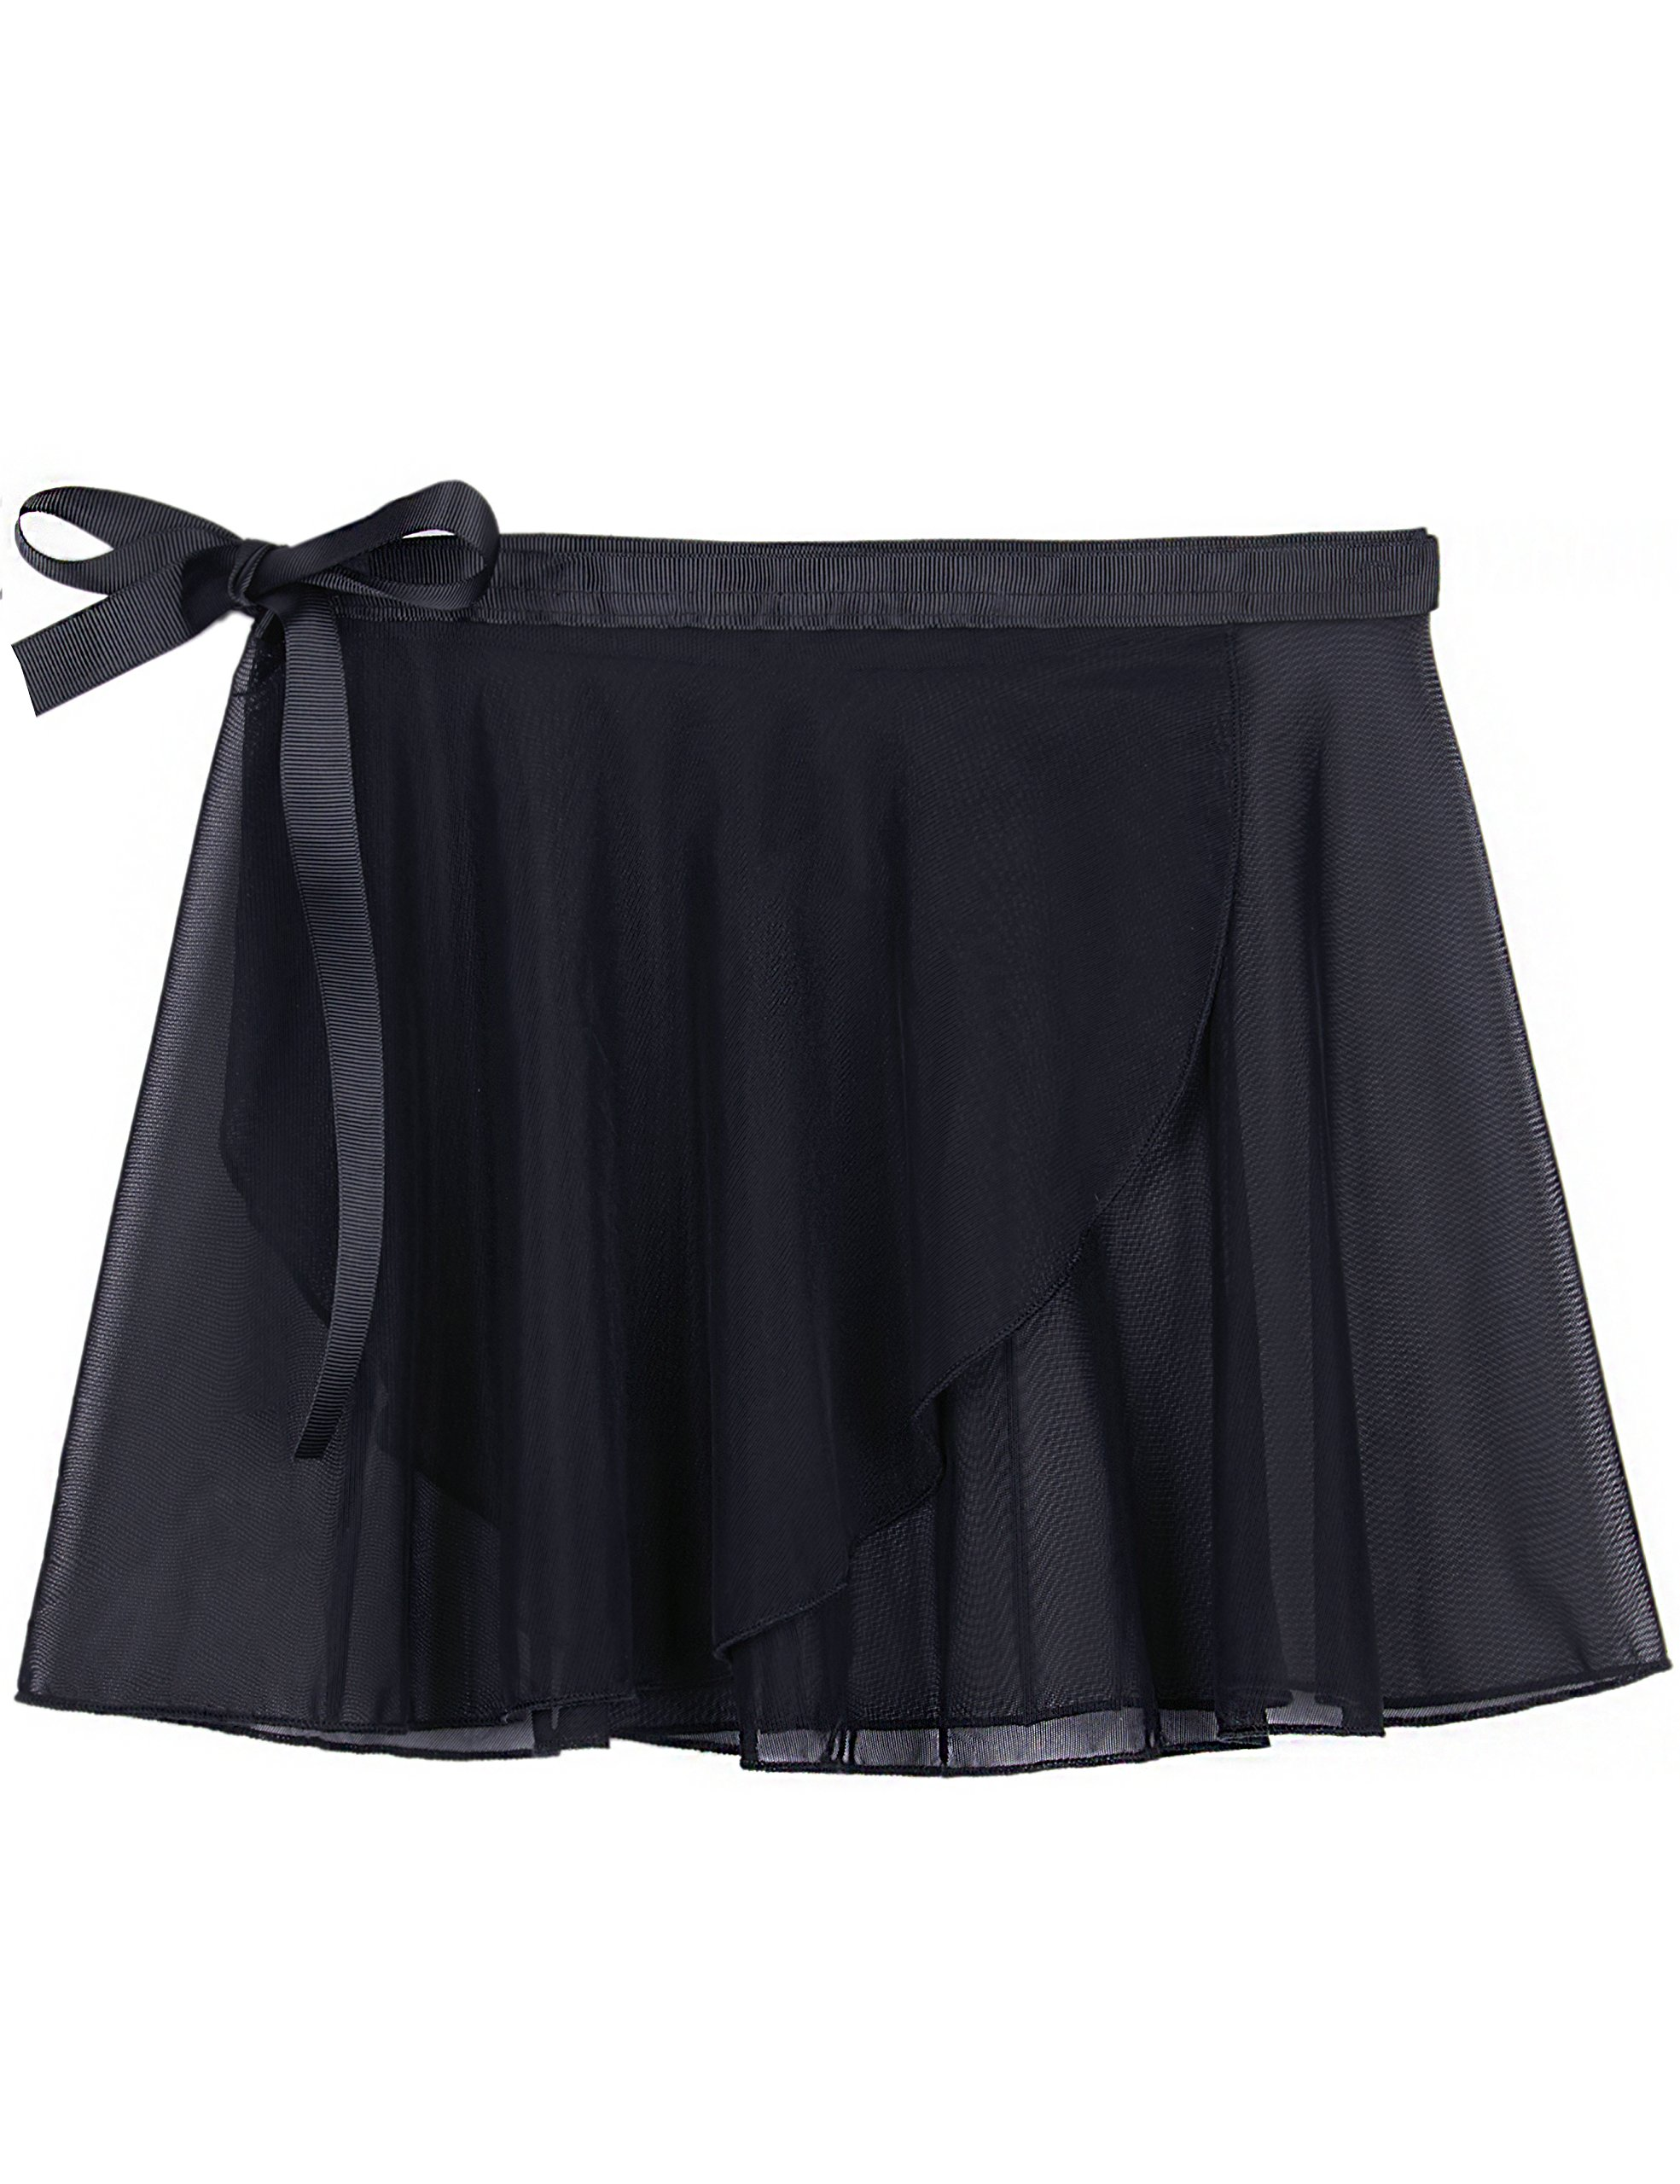 MdnMd Dance Skirt for Girls with Tie Waist (Black, Age 4-6,Height 45-49'')